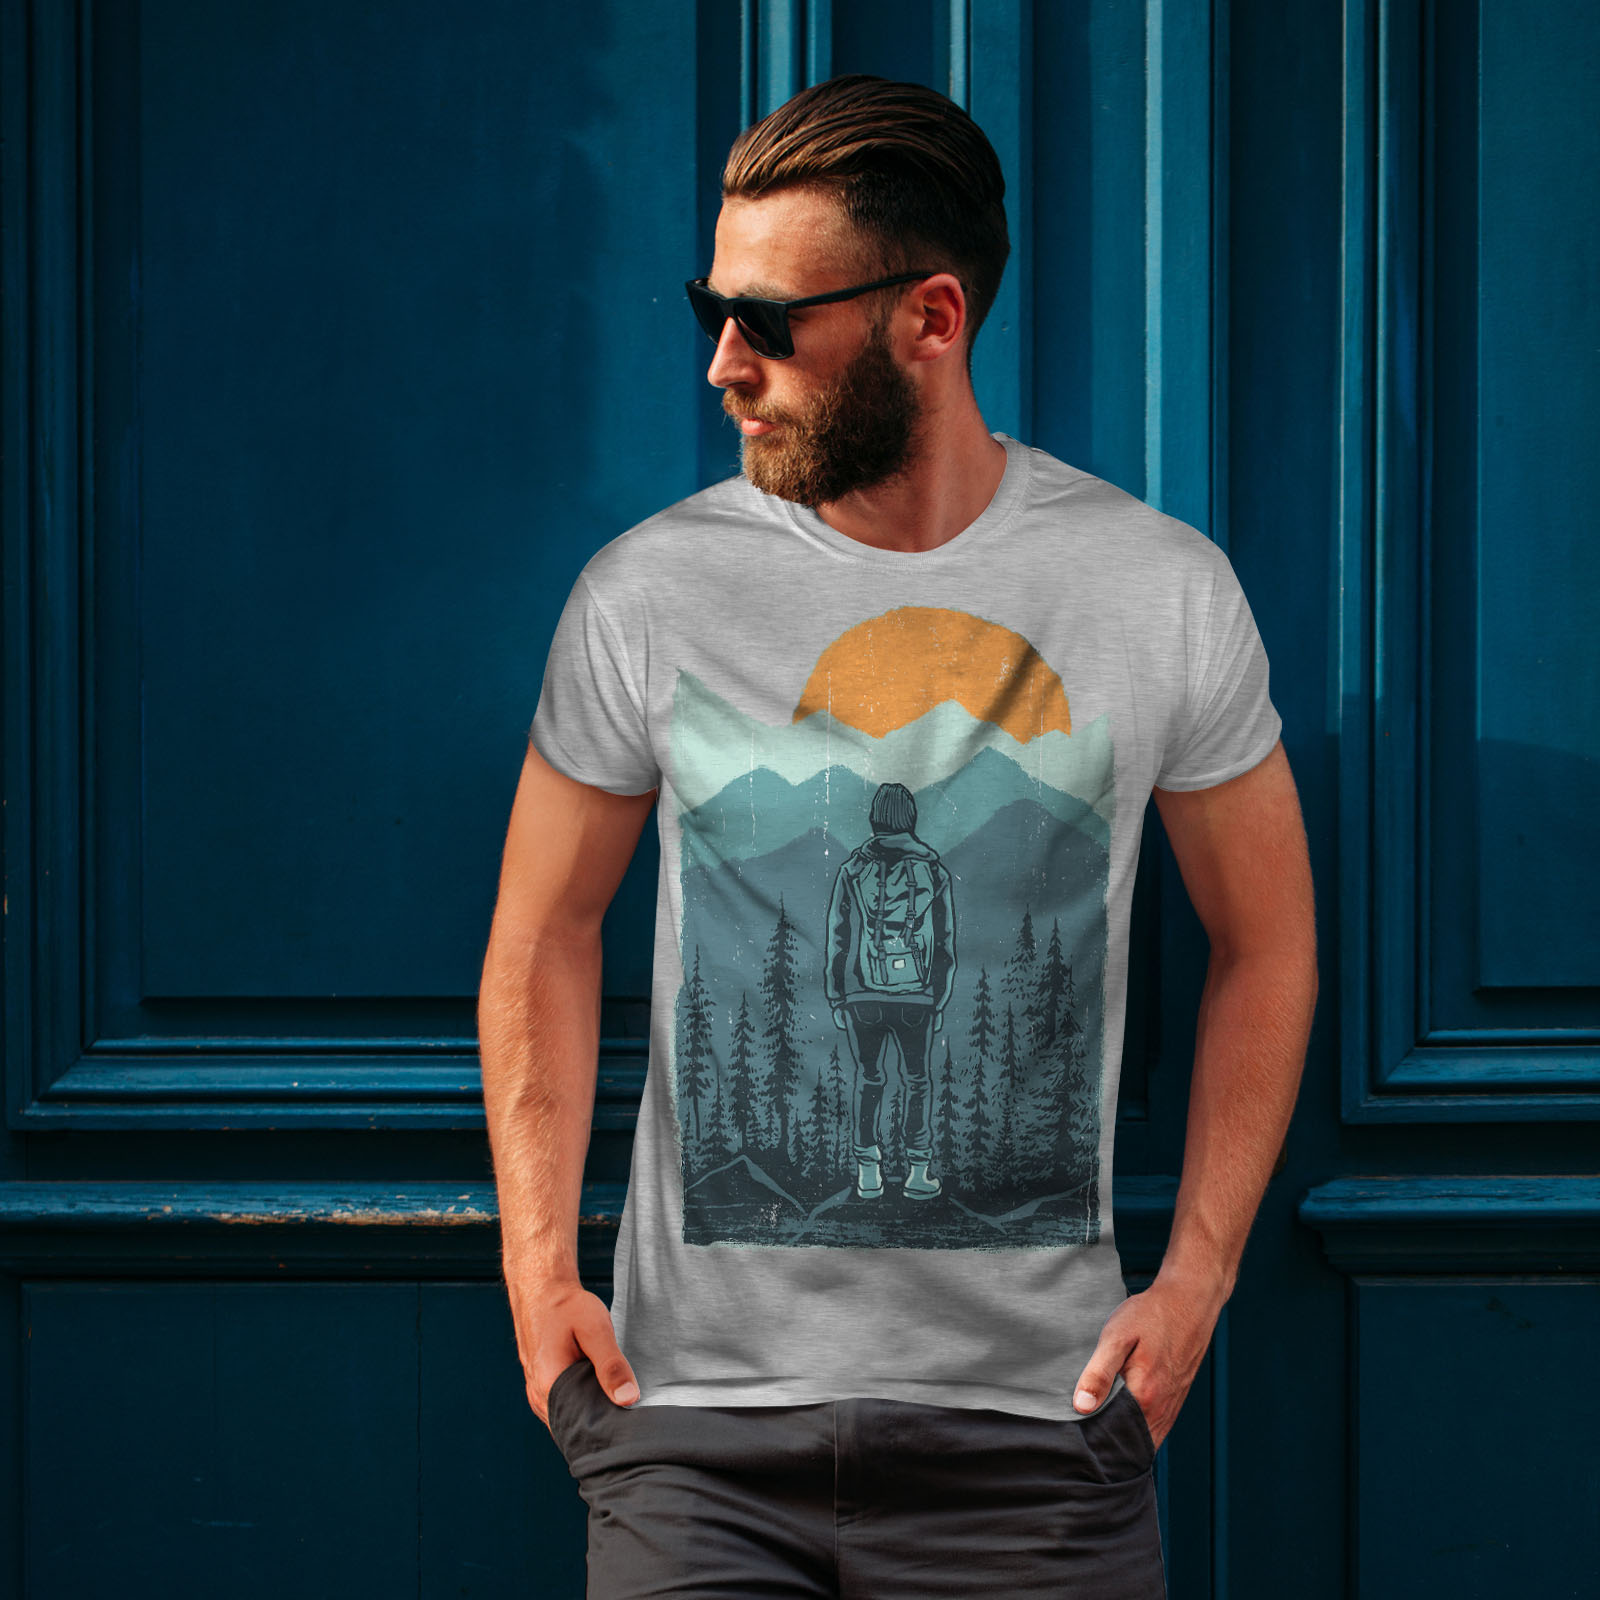 Wellcoda-SUNSET-Wilderness-CAMP-Da-Uomo-T-shirt-Wild-design-grafico-stampato-T-shirt miniatura 16